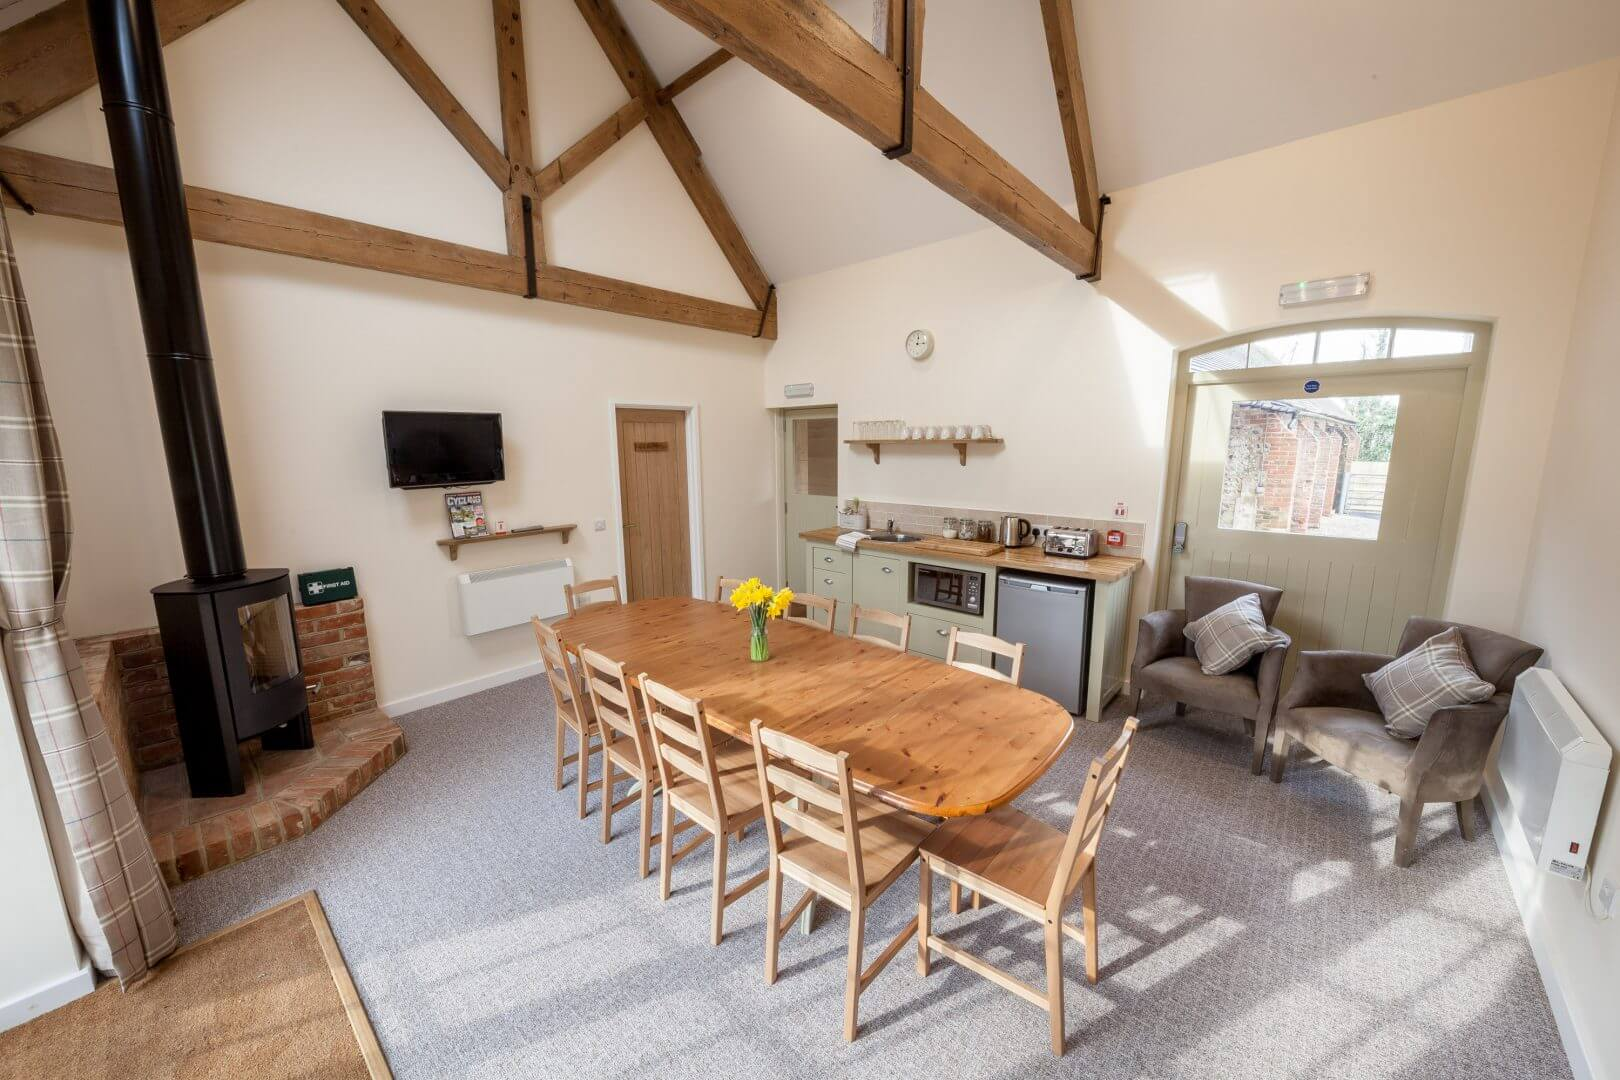 South Downs Bunkhouse - West Sussex - independent hostel - self catering